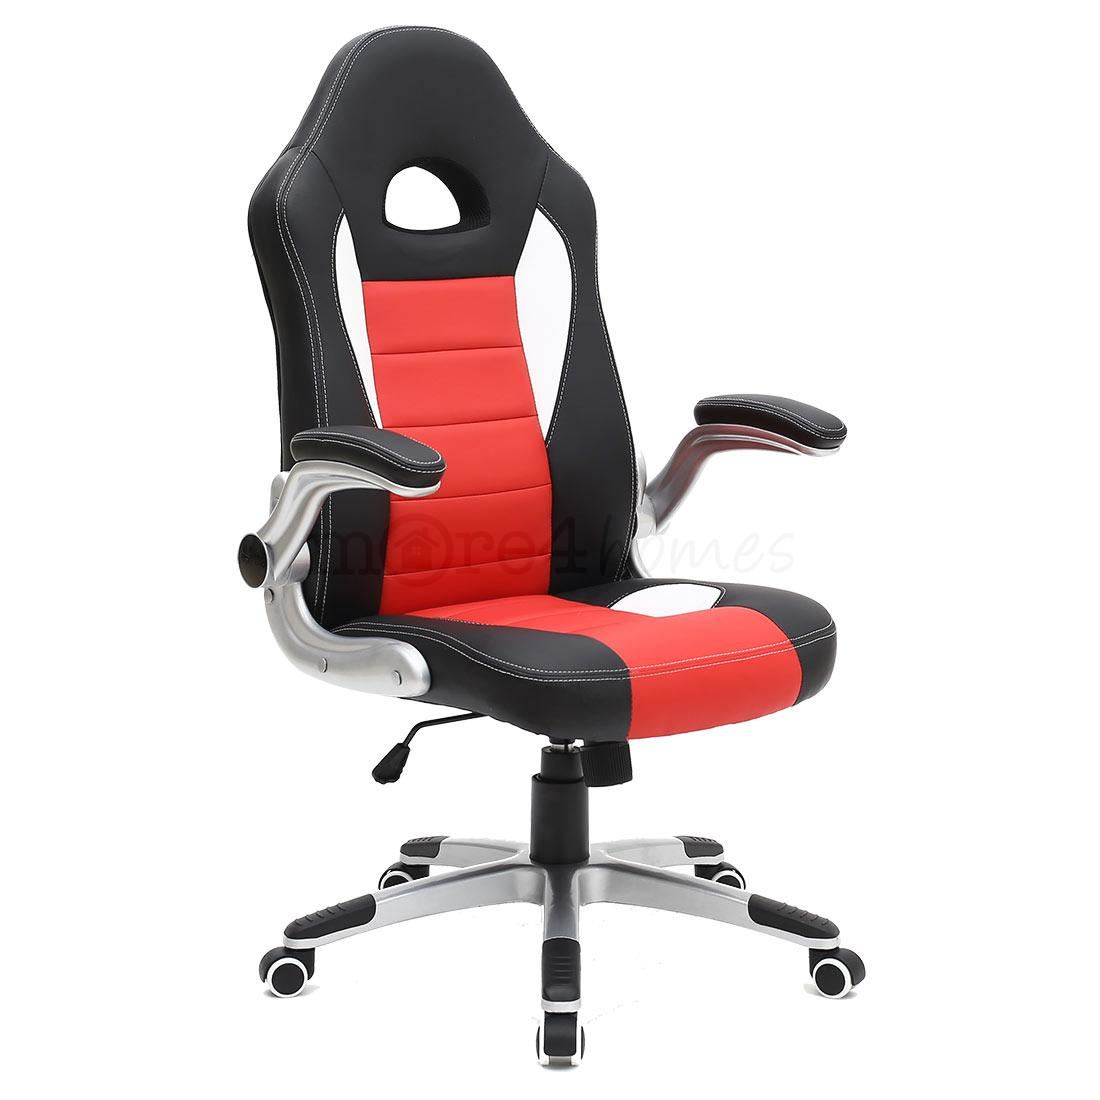 cruz sport racing car office chair leather adjustable arms gaming desk bucket. Black Bedroom Furniture Sets. Home Design Ideas